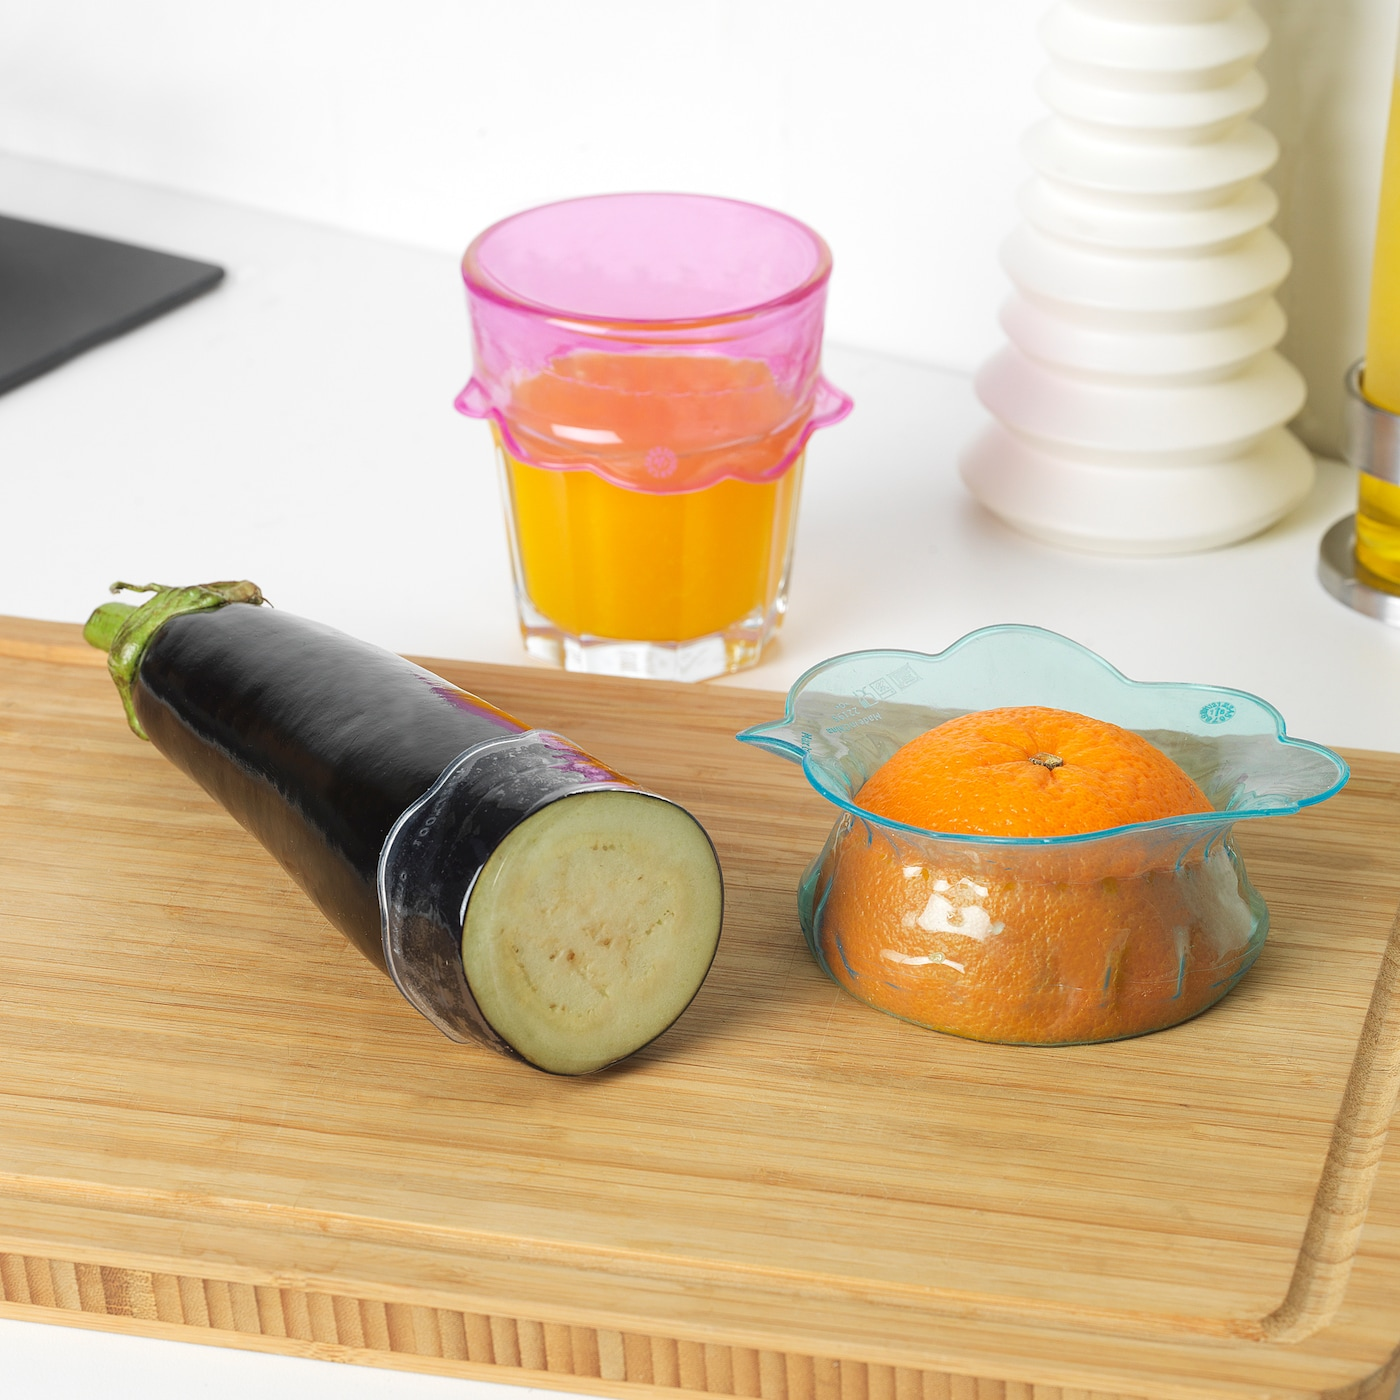 IKEA OVERMATT REUSABLE FOOD COVER SILICONE SET OF 3 JAR COVERS